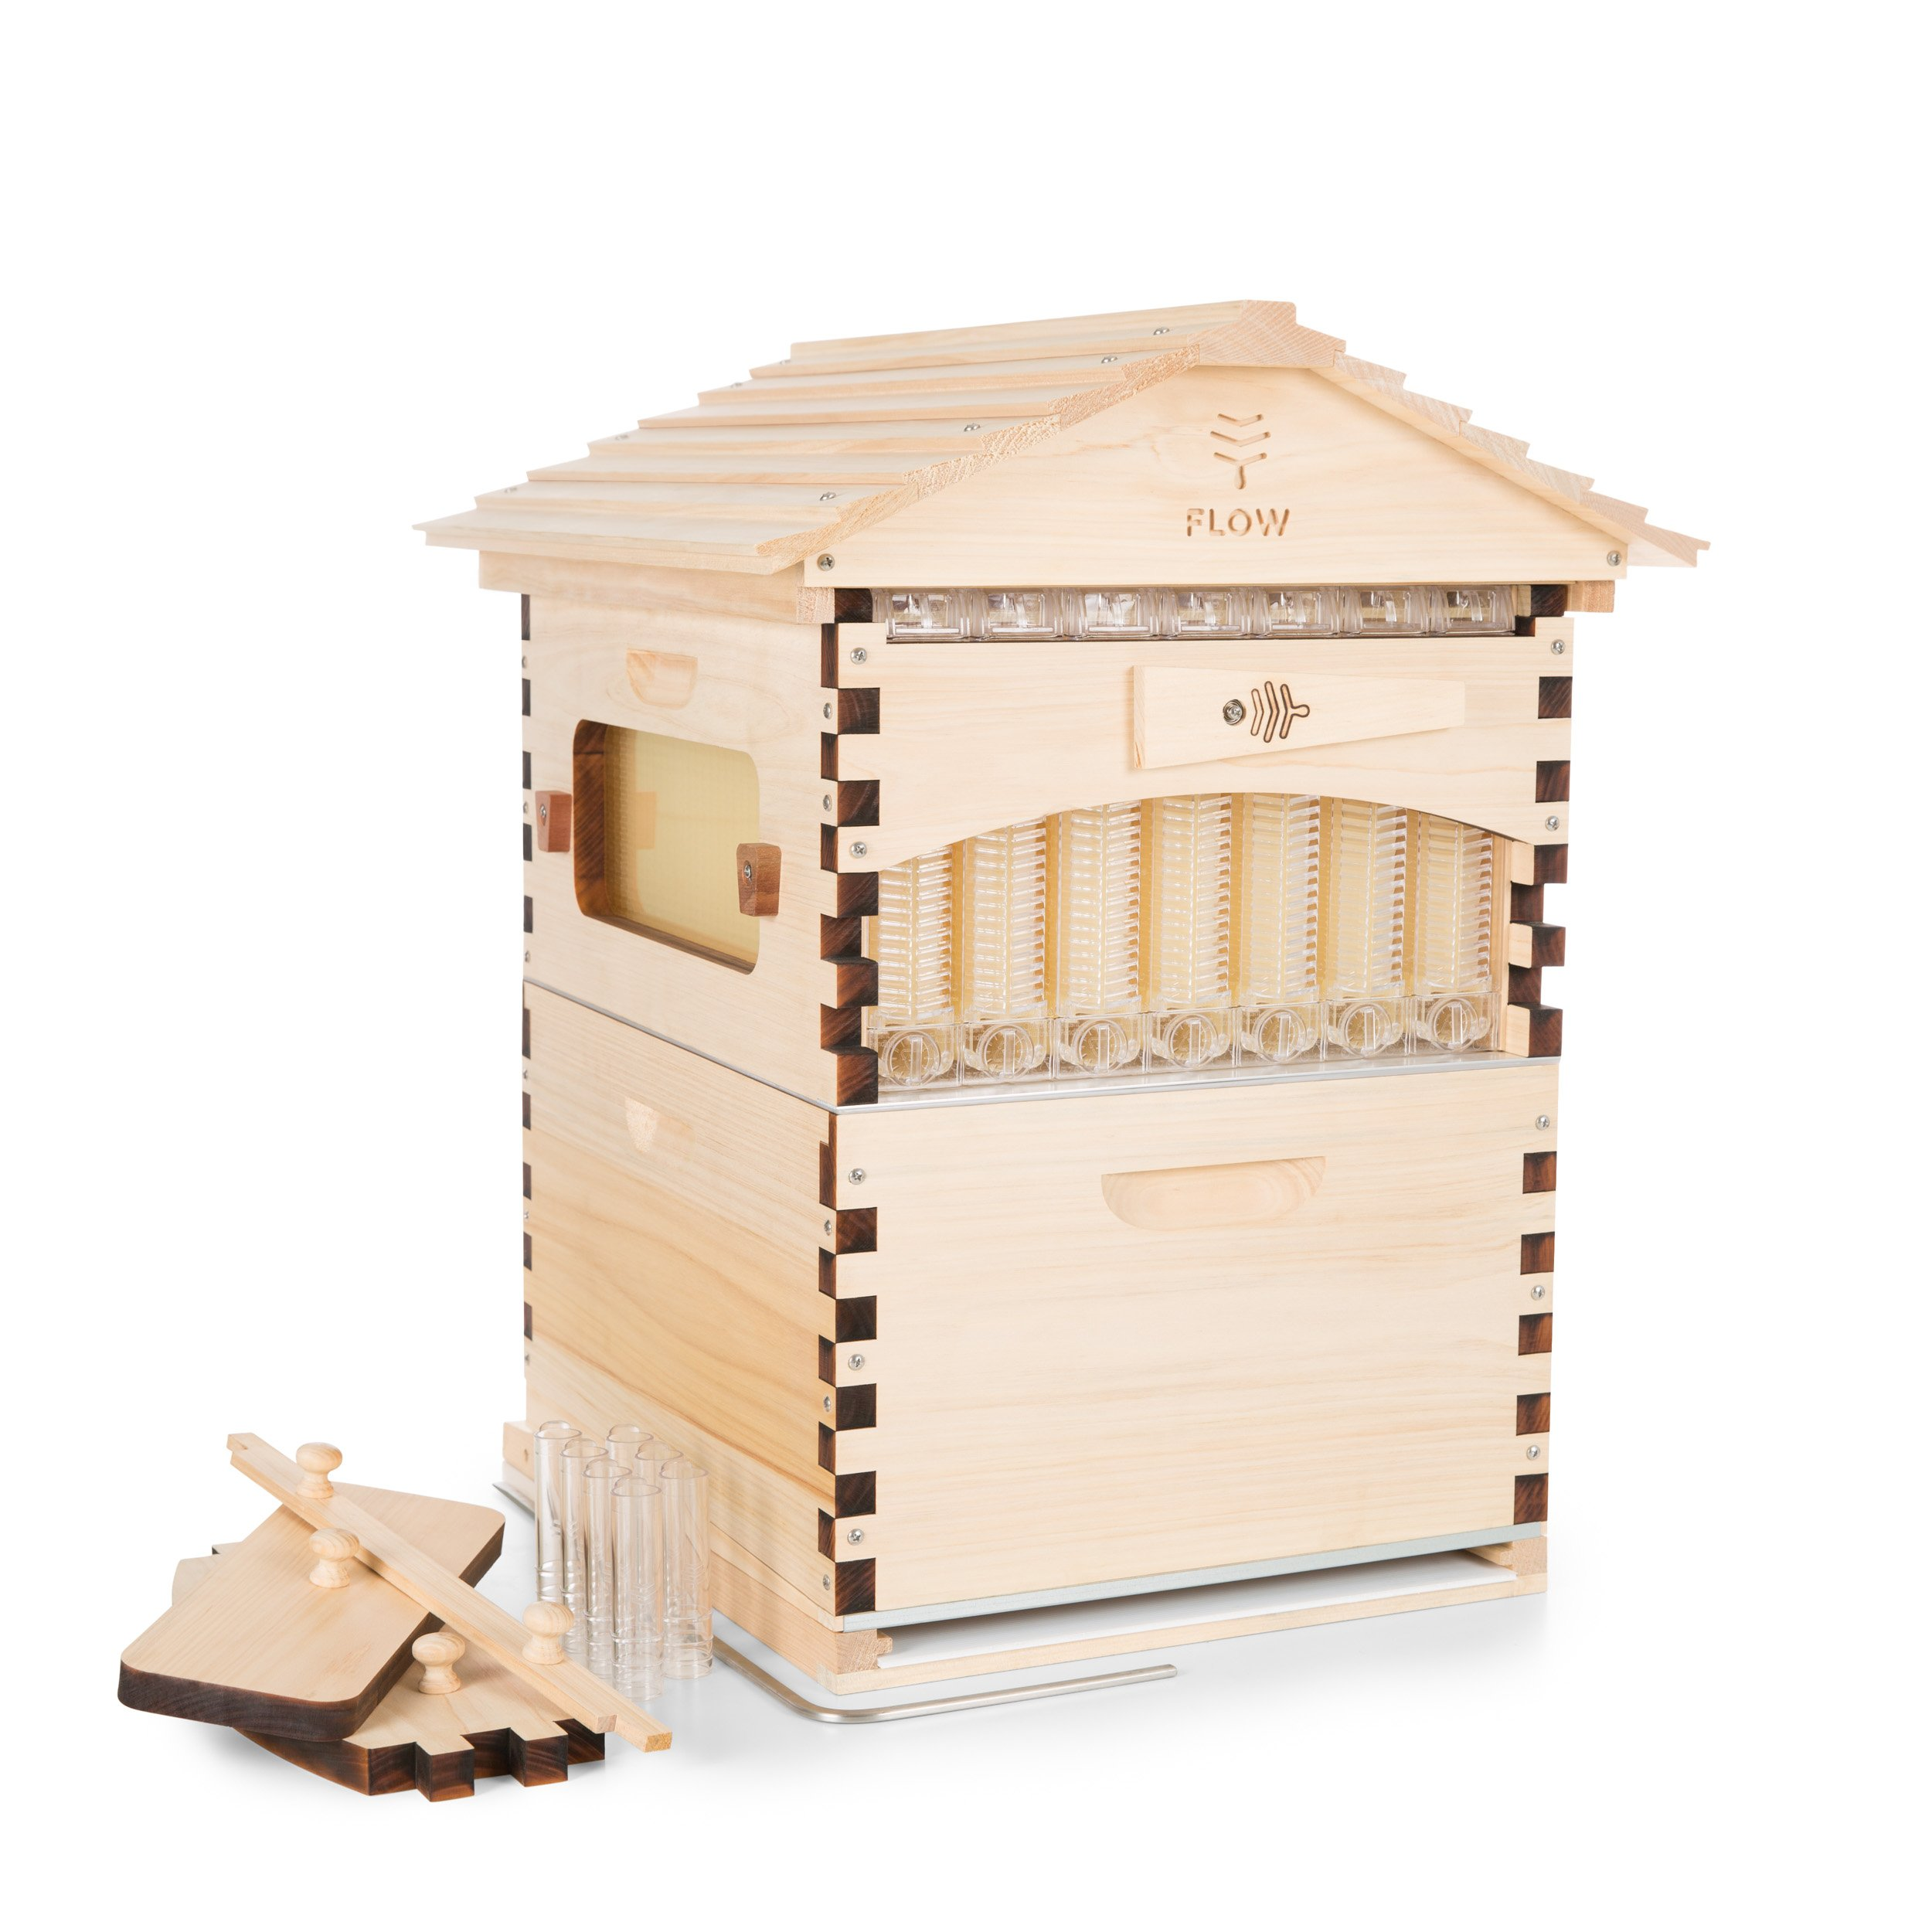 Official Flow Hive Classic Araucaria 7 Frame - Langstroth style beehive featuring our patented Flow tech, suitable for beginners & experienced beekeepers